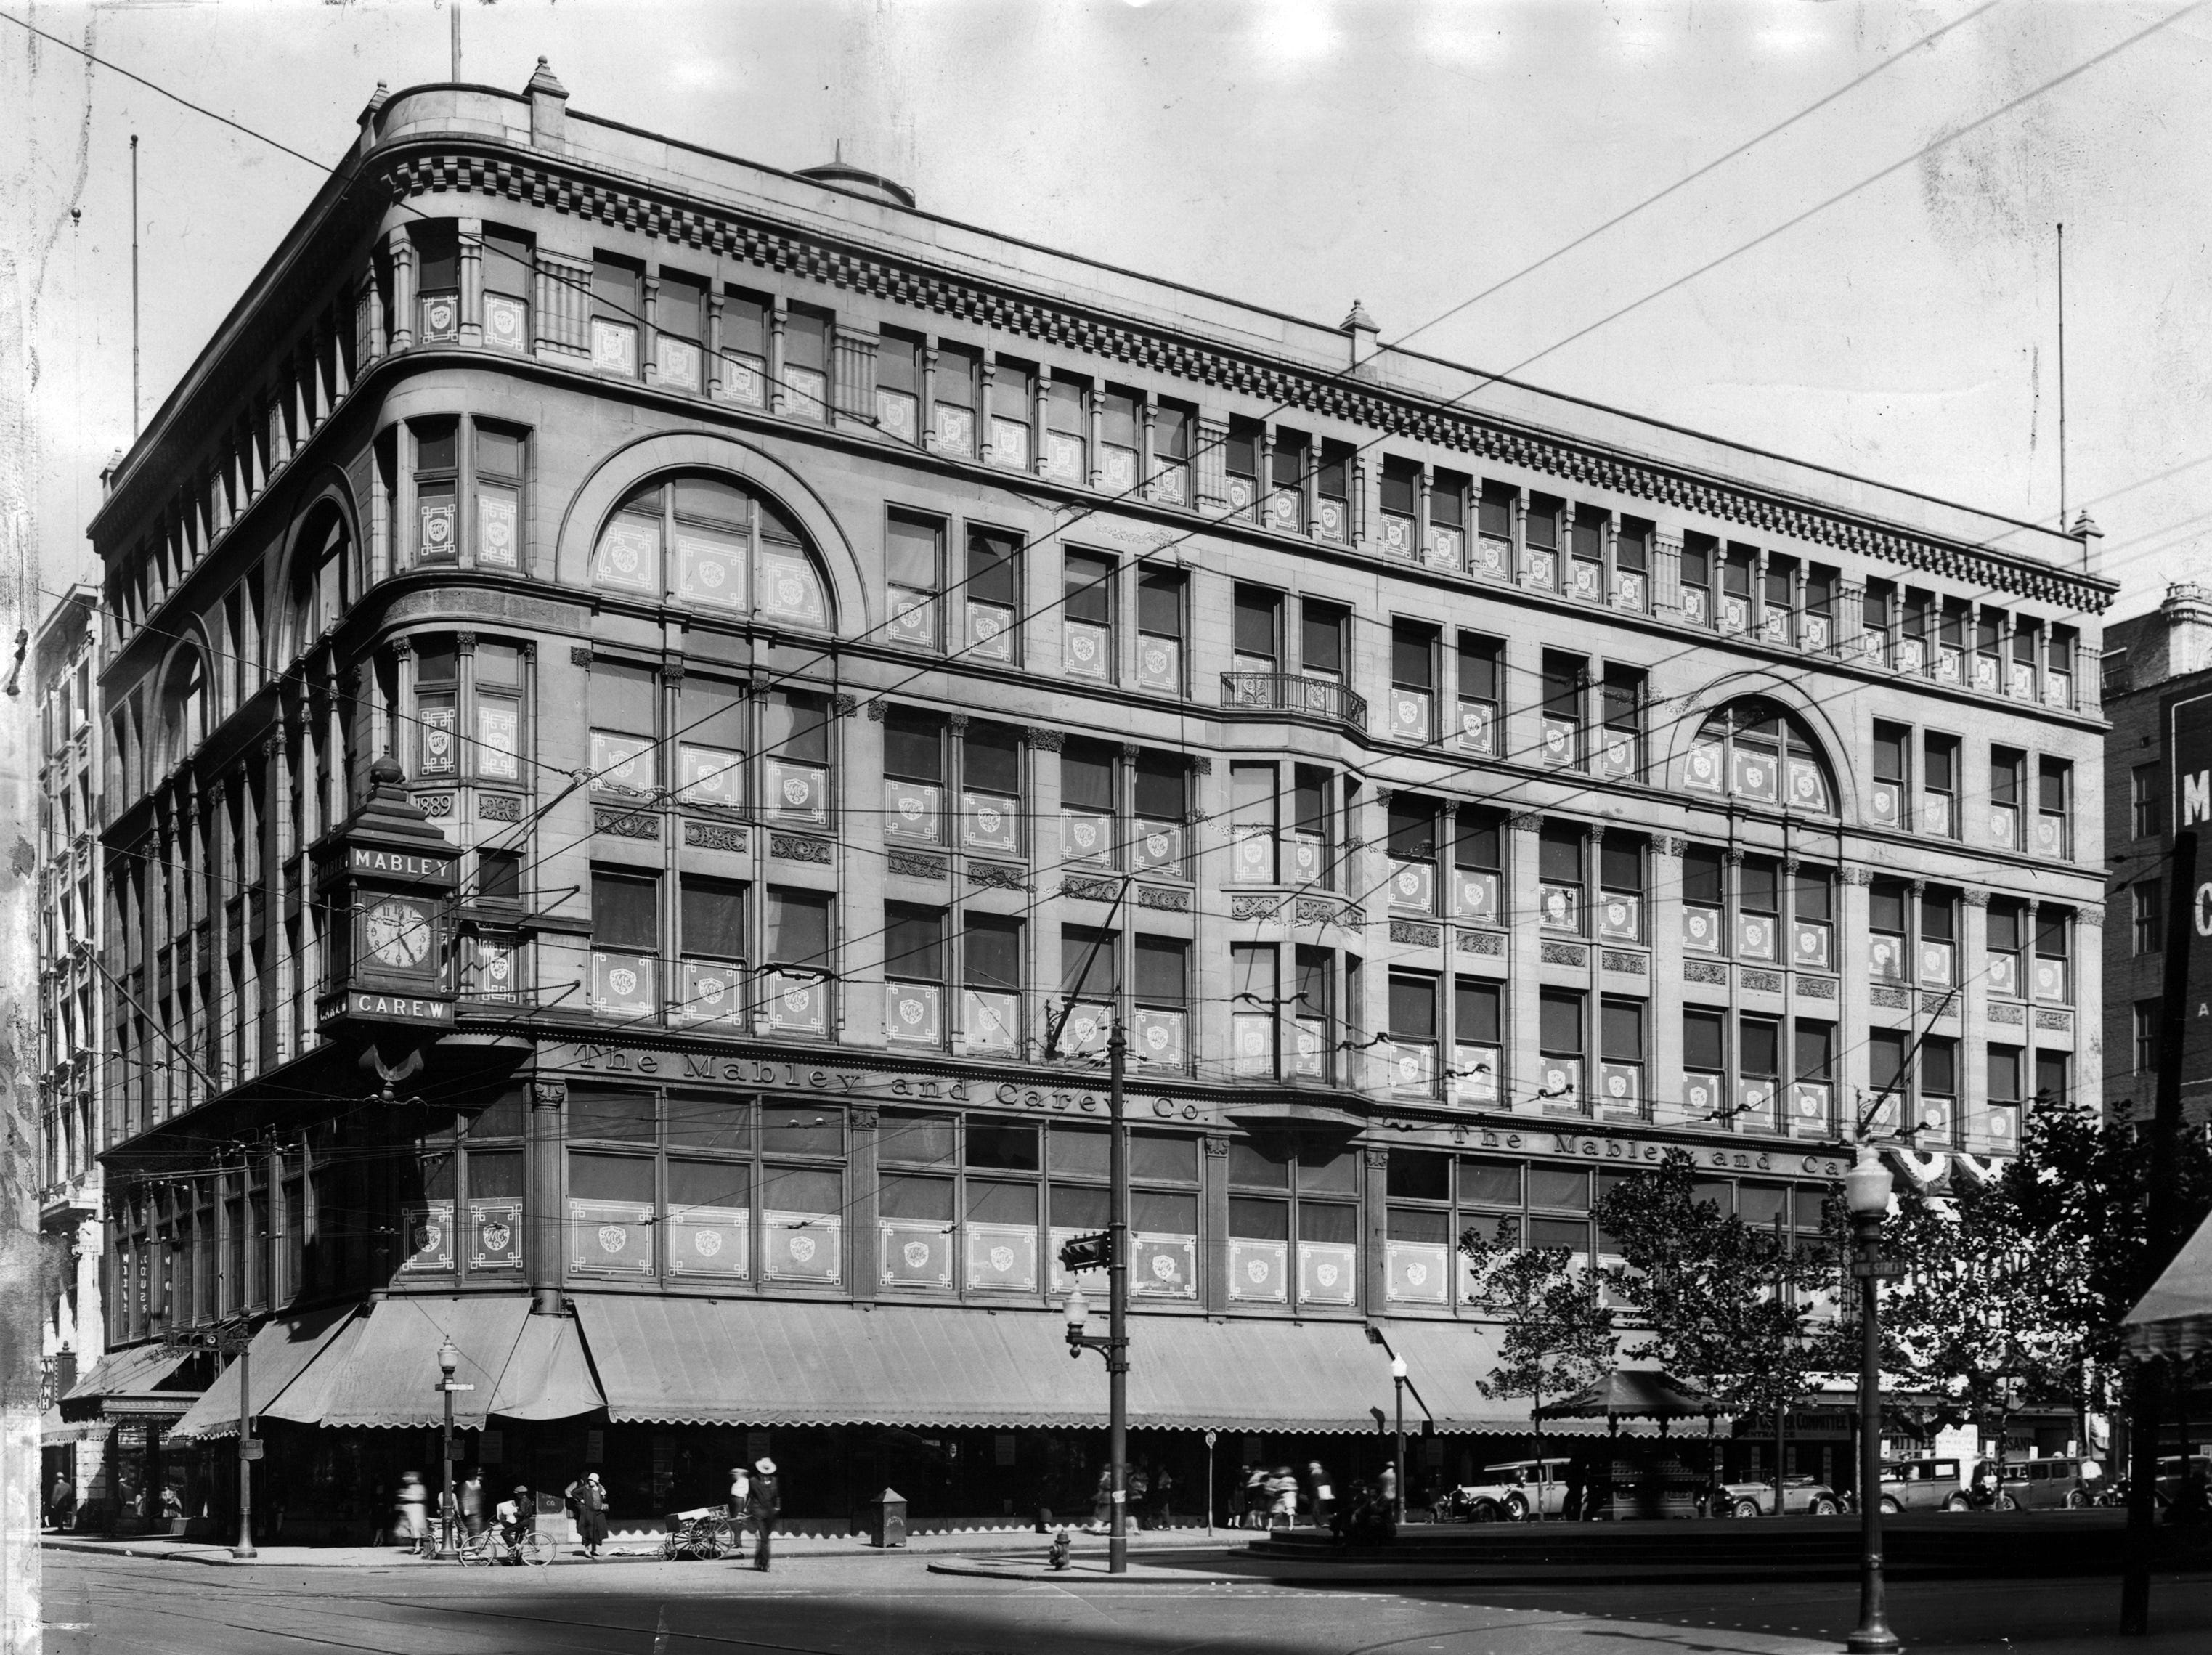 Mabley & Carew, founded in 1877 by C.R. Mabley and J.T. Carew, occupied three different corners at Fifth and Vine streets. The building, designed by McLaughlin in 1889, was at the current location of Fountain Square and helped to transform the area into the heart of the city.